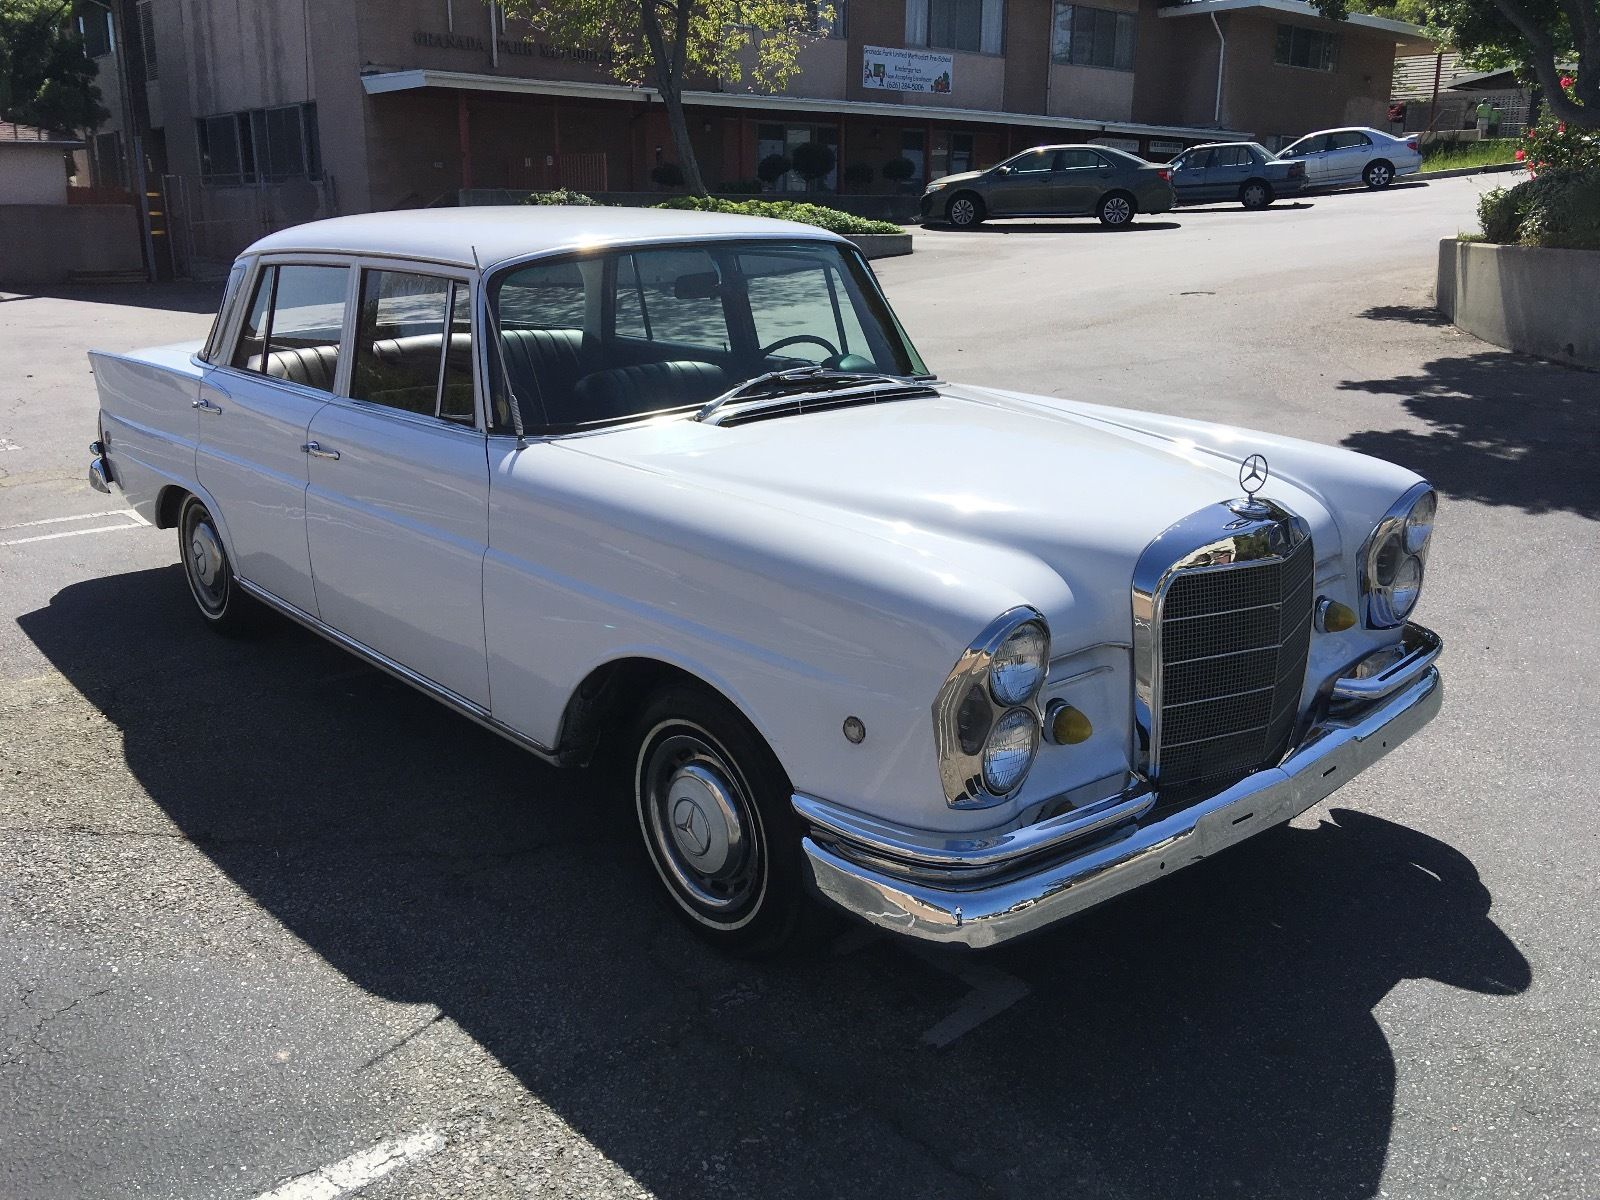 1964 mercedes benz 220s sedan tailfin for sale for 1953 mercedes benz 220 sedan for sale